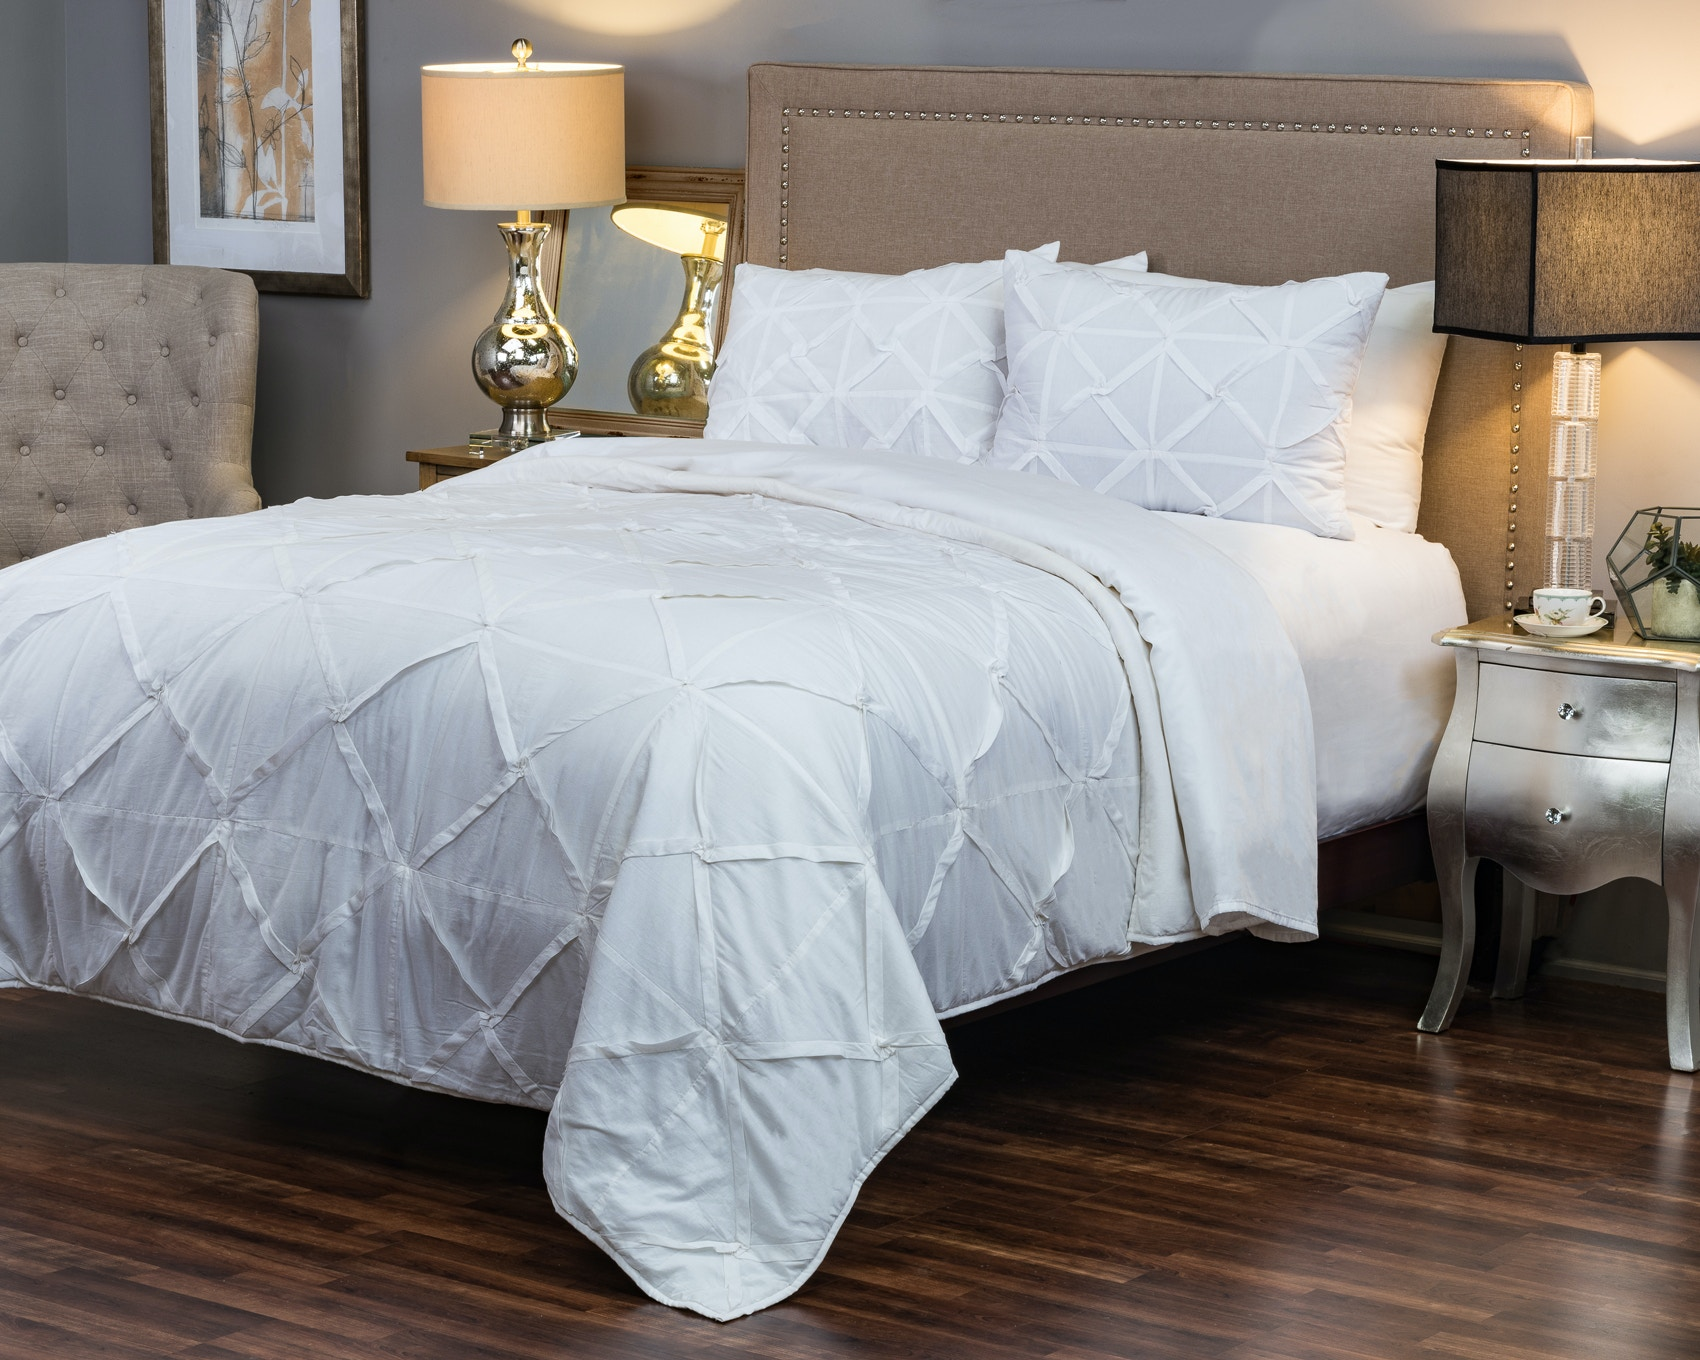 Rizzy Home Bedroom Carrington Quilt King 051622